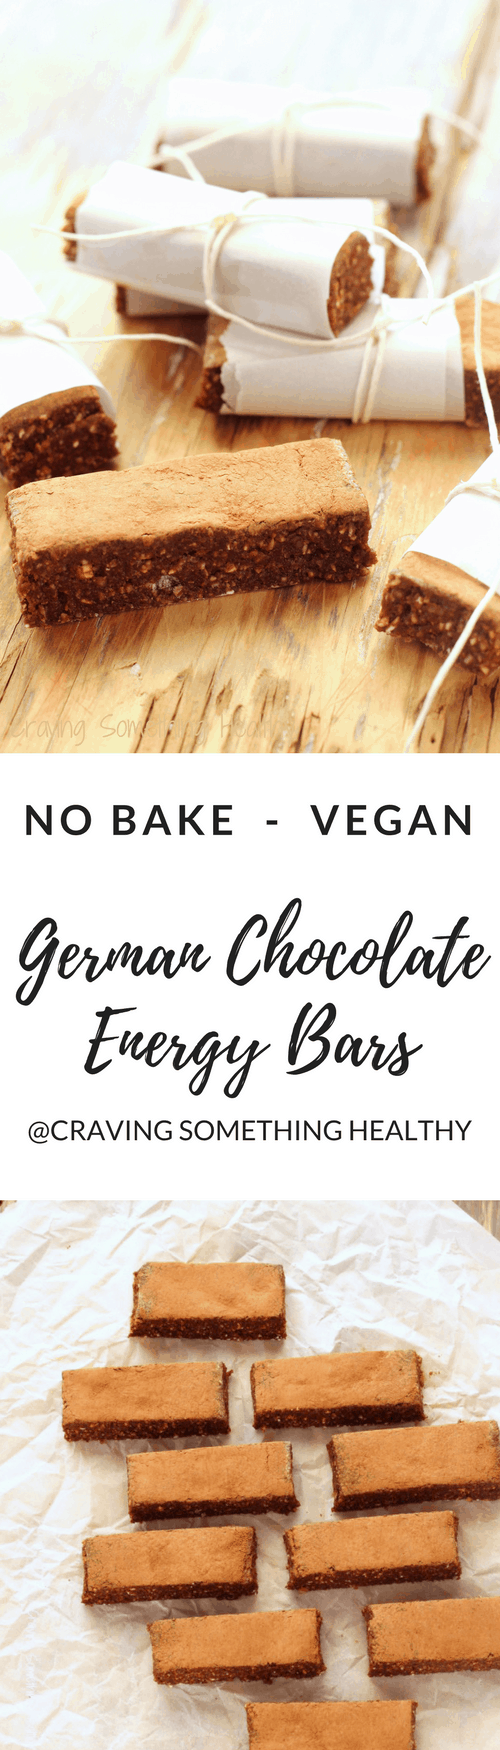 Vegan German Chocolate Energy Bars|Craving Something Healthy